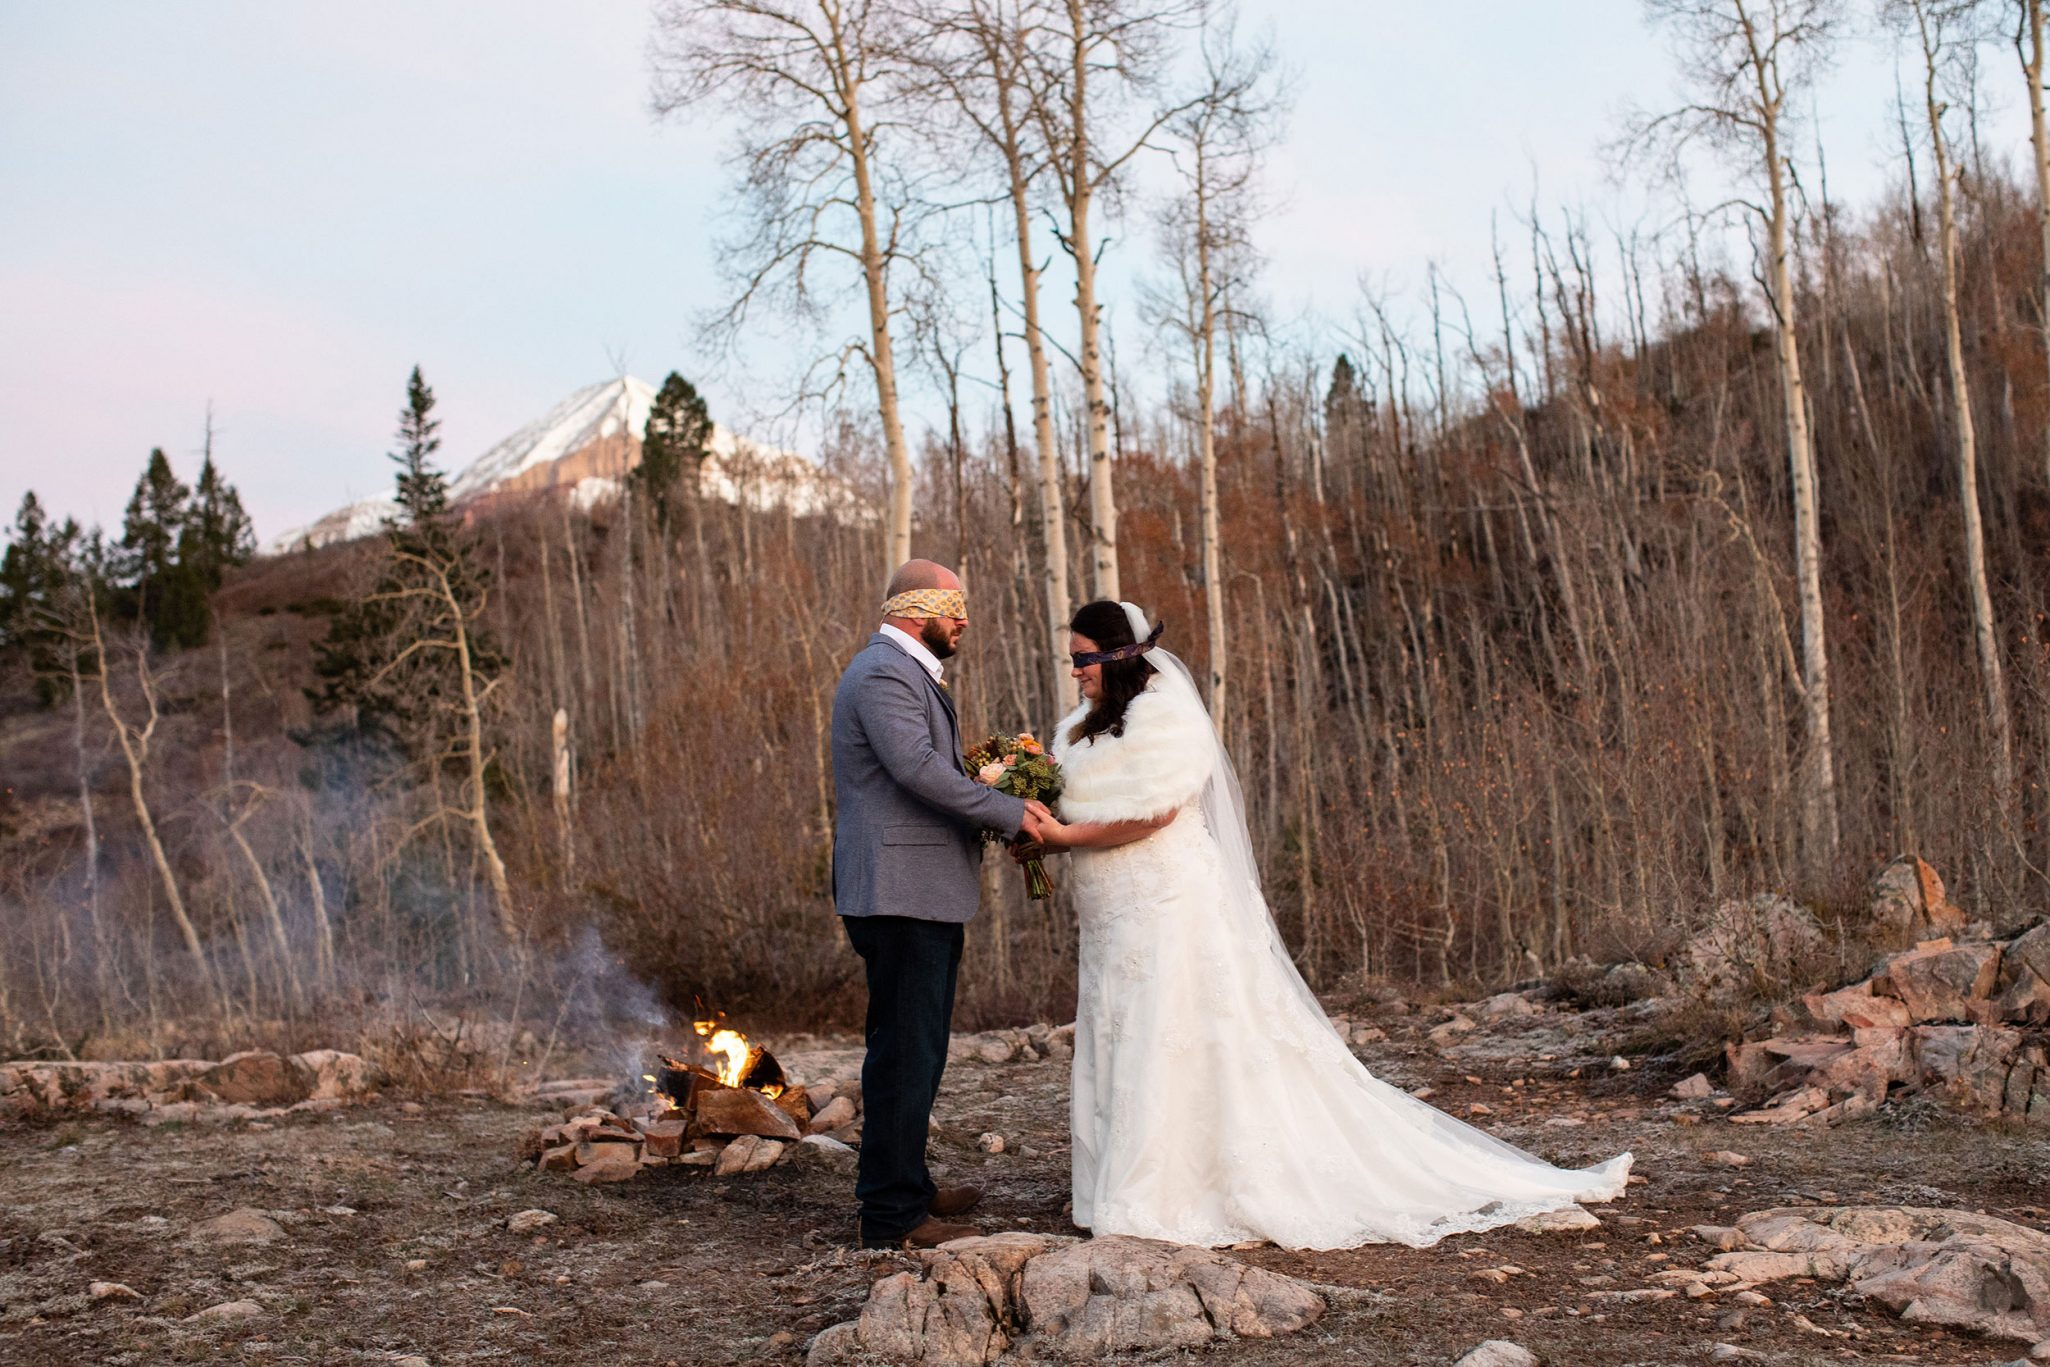 First Look | A Durango Elopement in the Mountains